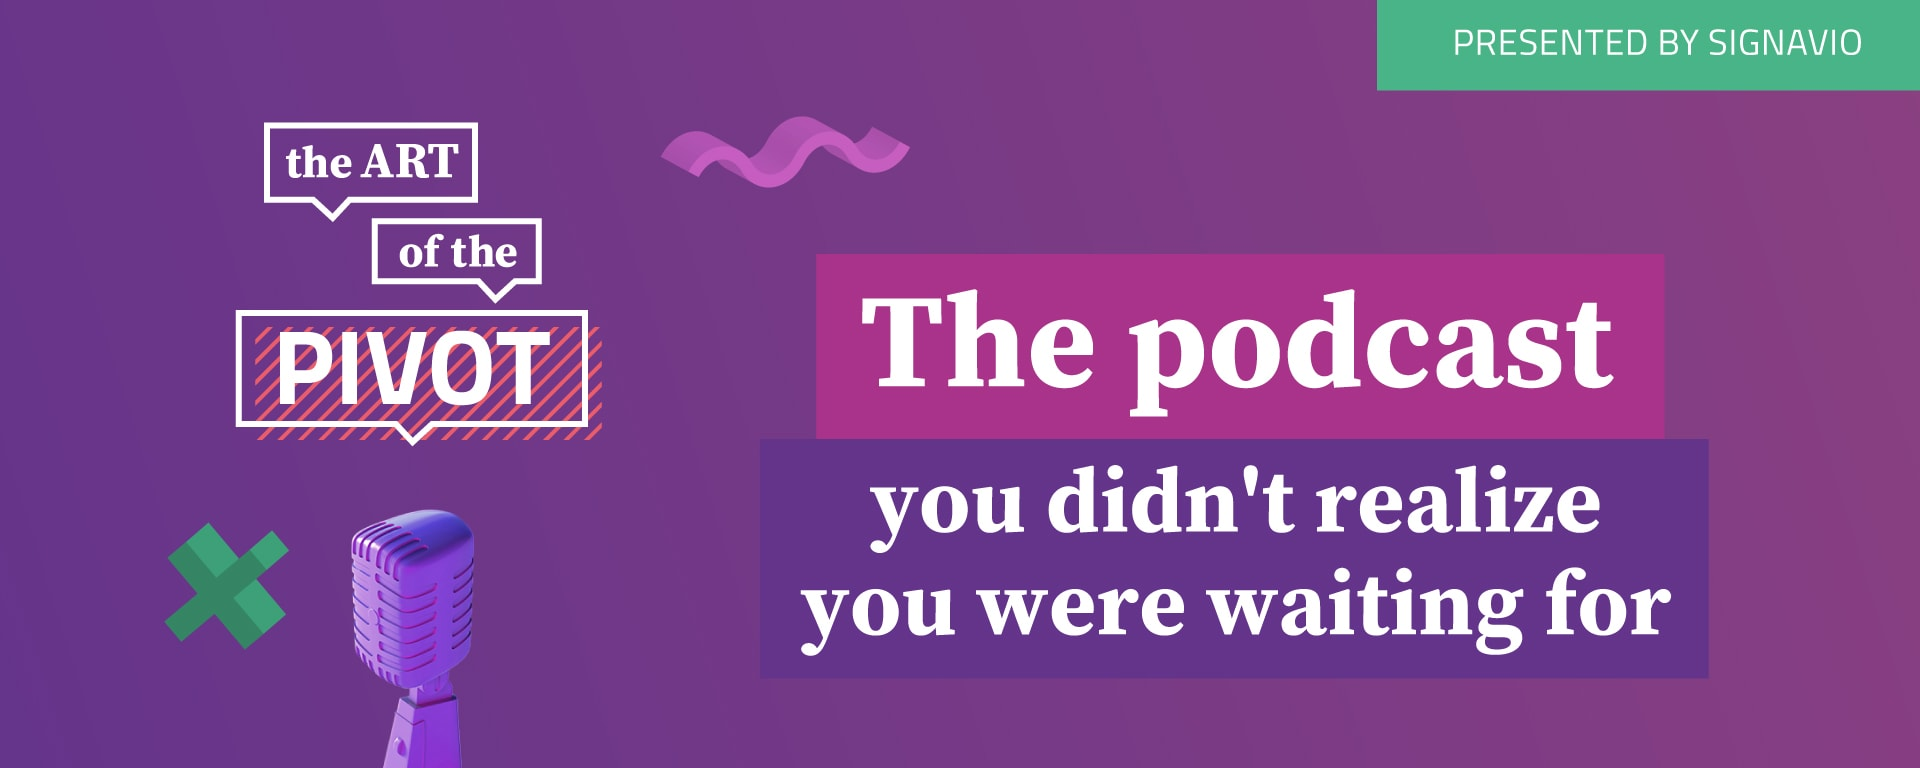 banner image for The Art of the Pivot video podcast